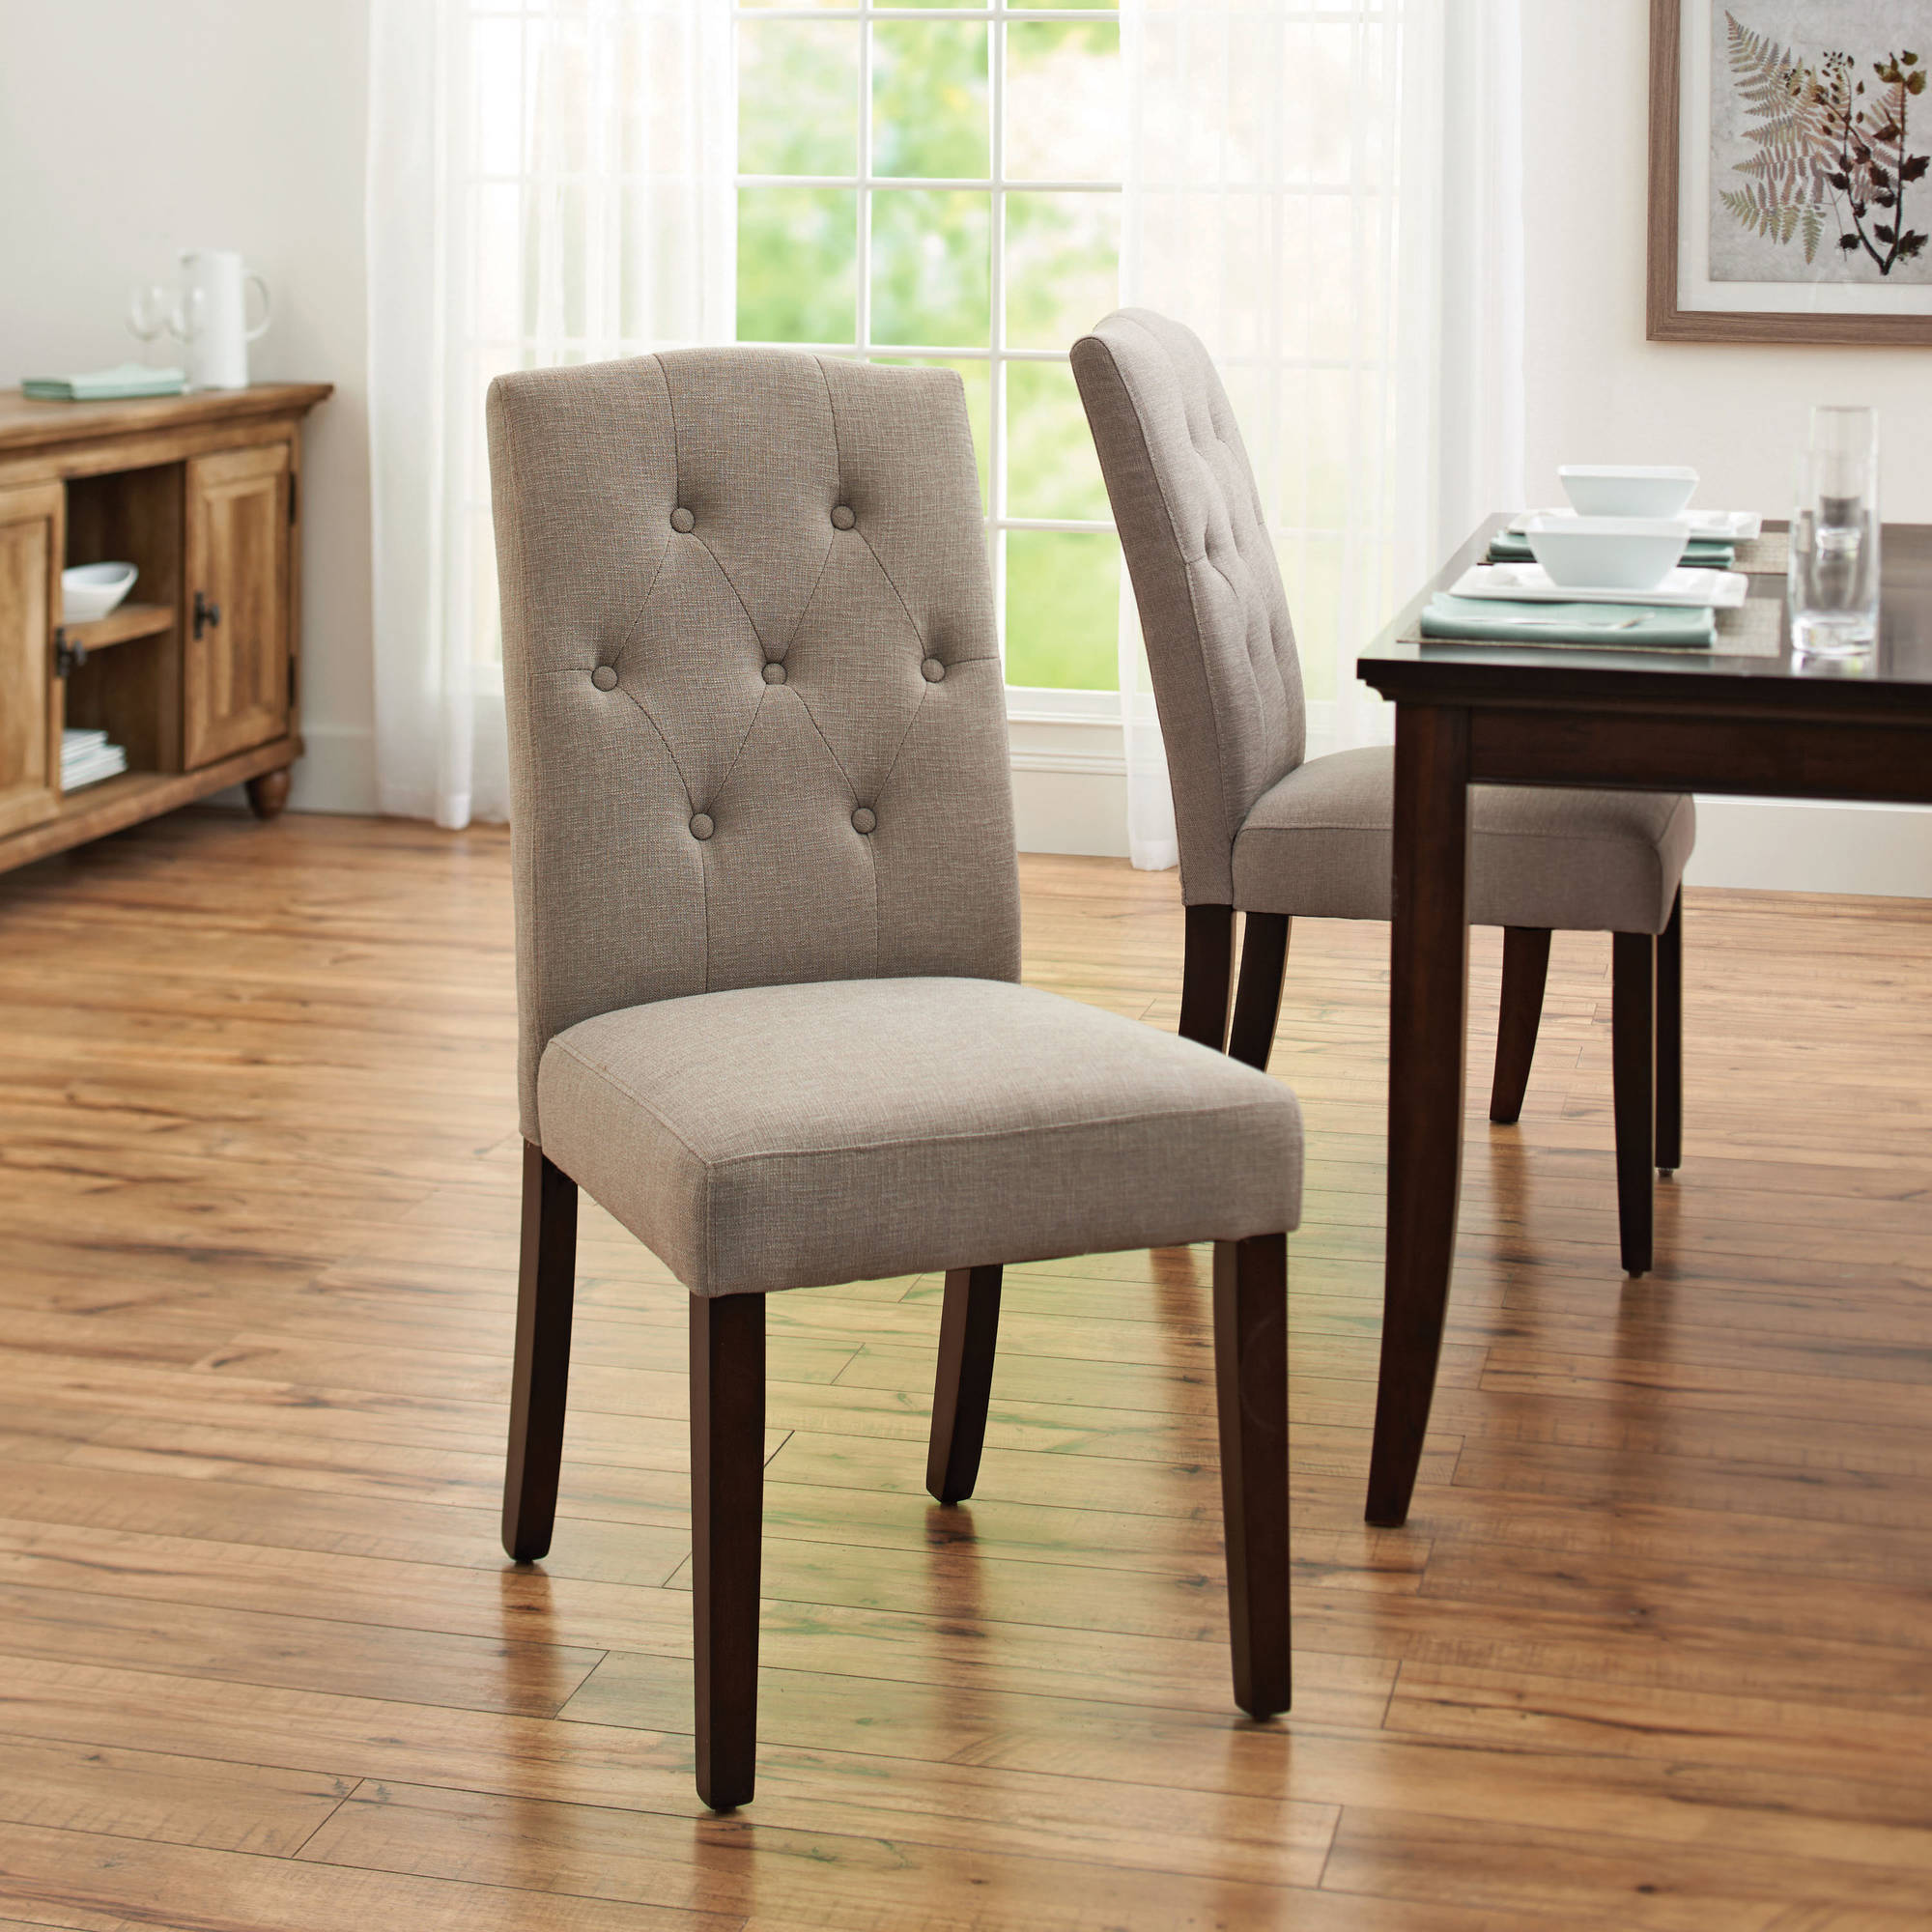 Dining Room Swivel Accent Chair With Arms